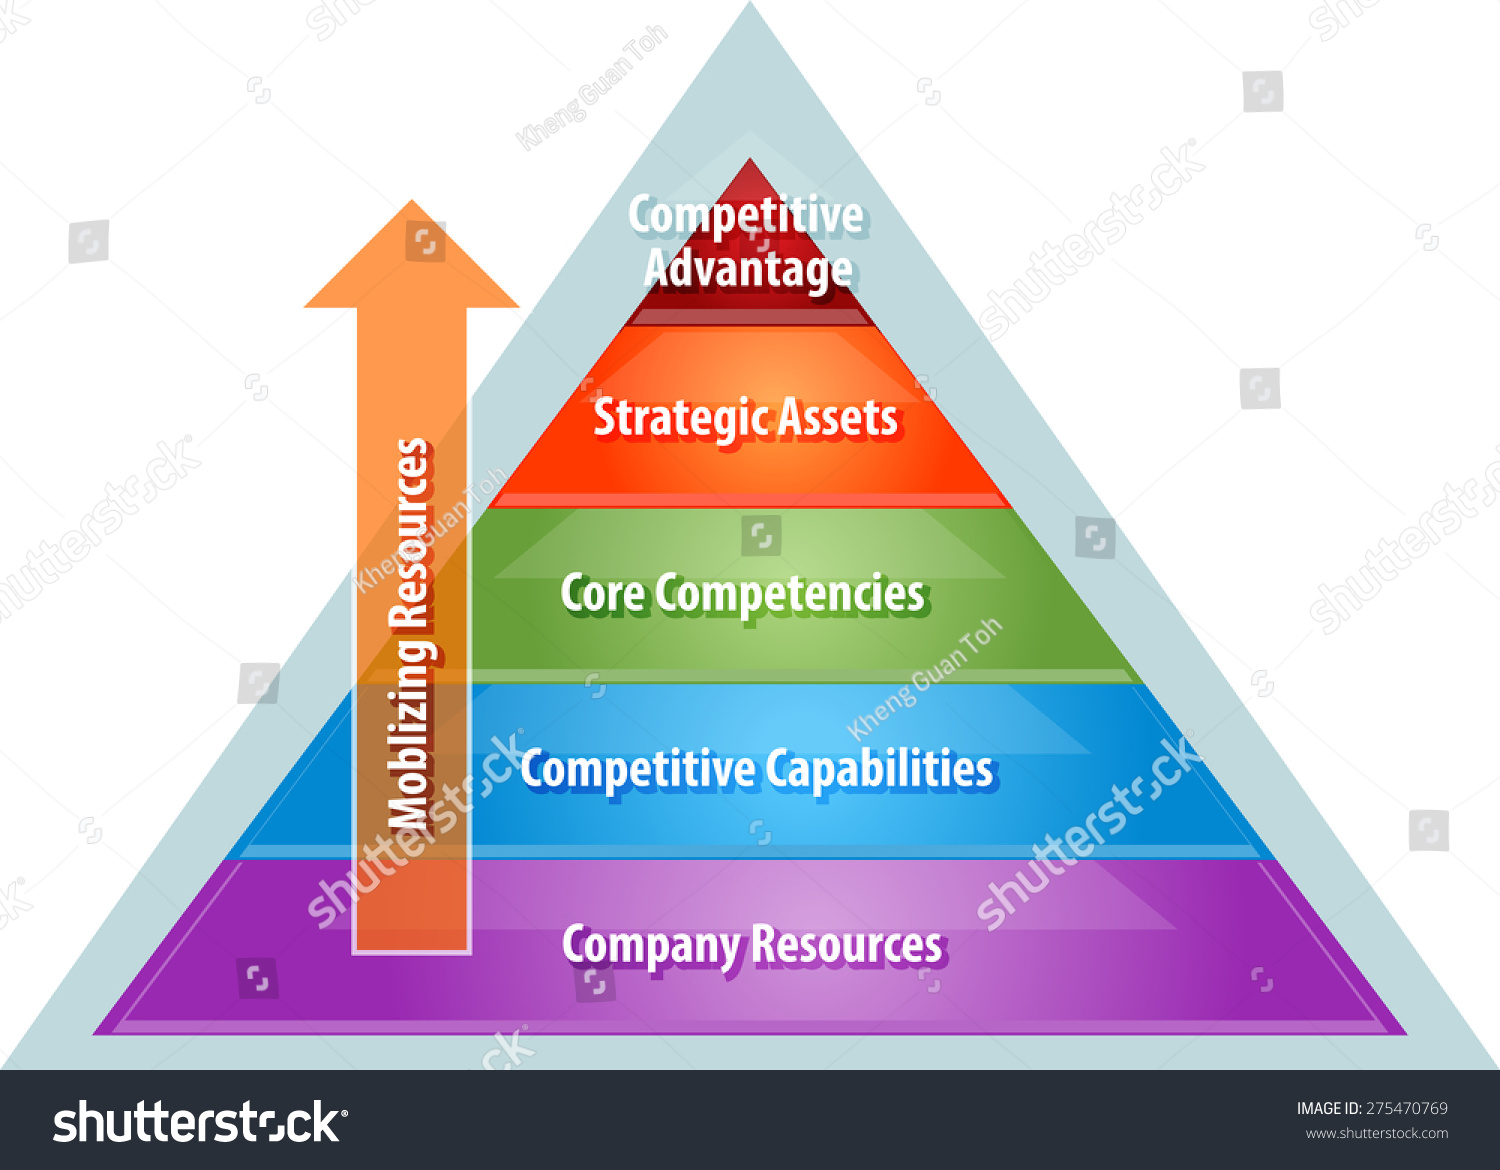 Concepts of Corporate Planning